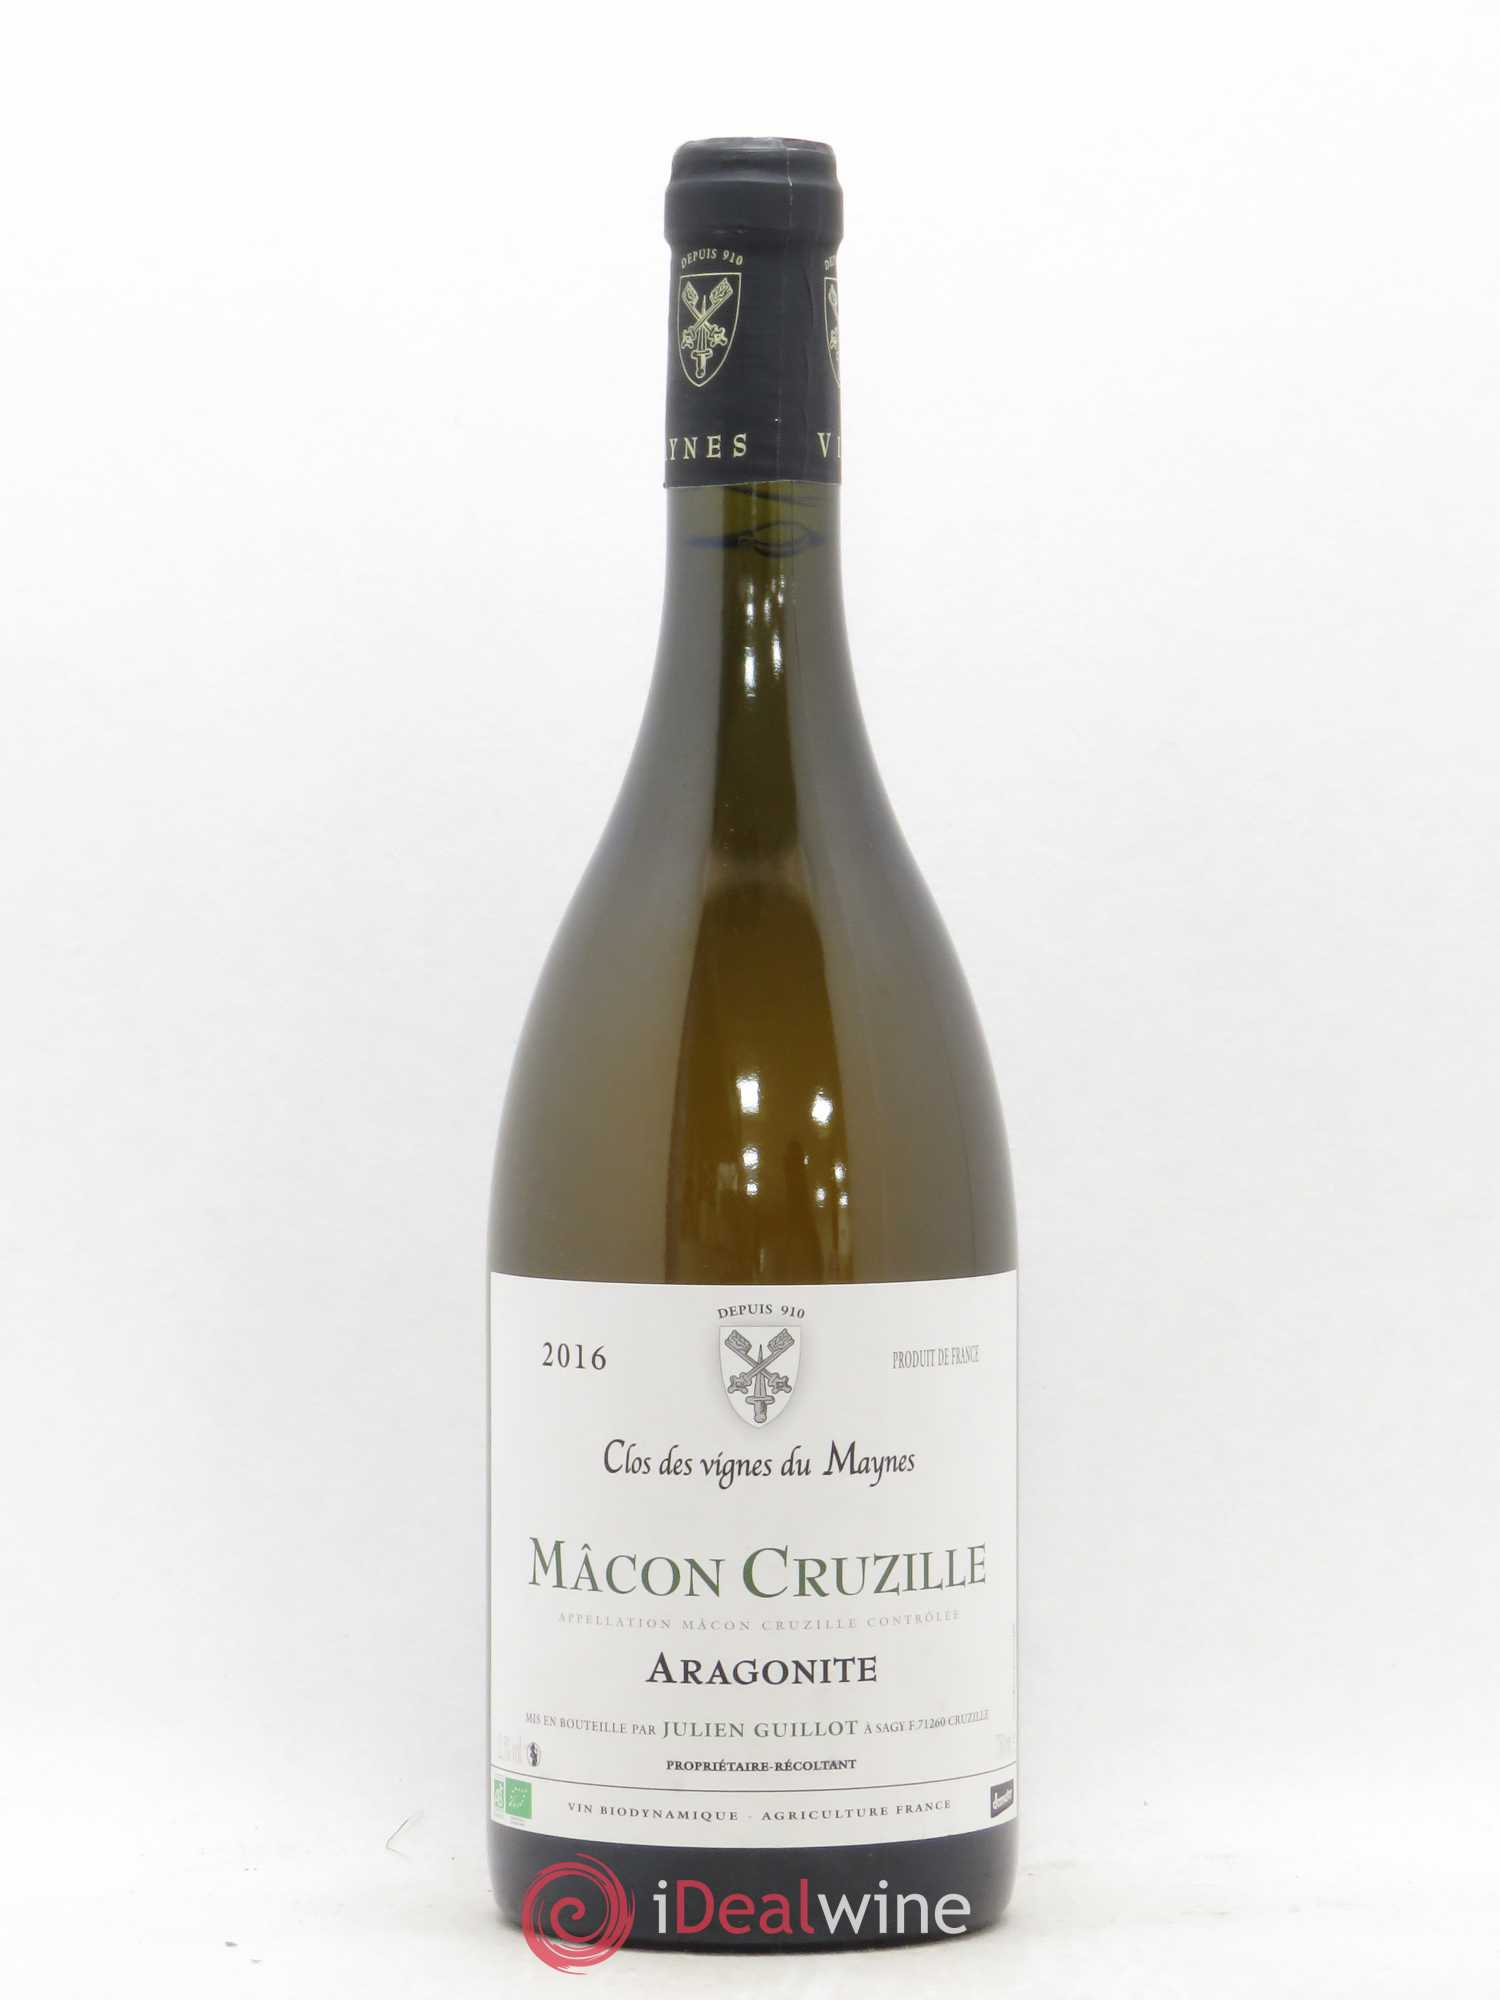 Mâcon Cruzille Aragonite Clos des Vignes du Maynes - Julien Guillot  2016 - Lot of 1 Bottle